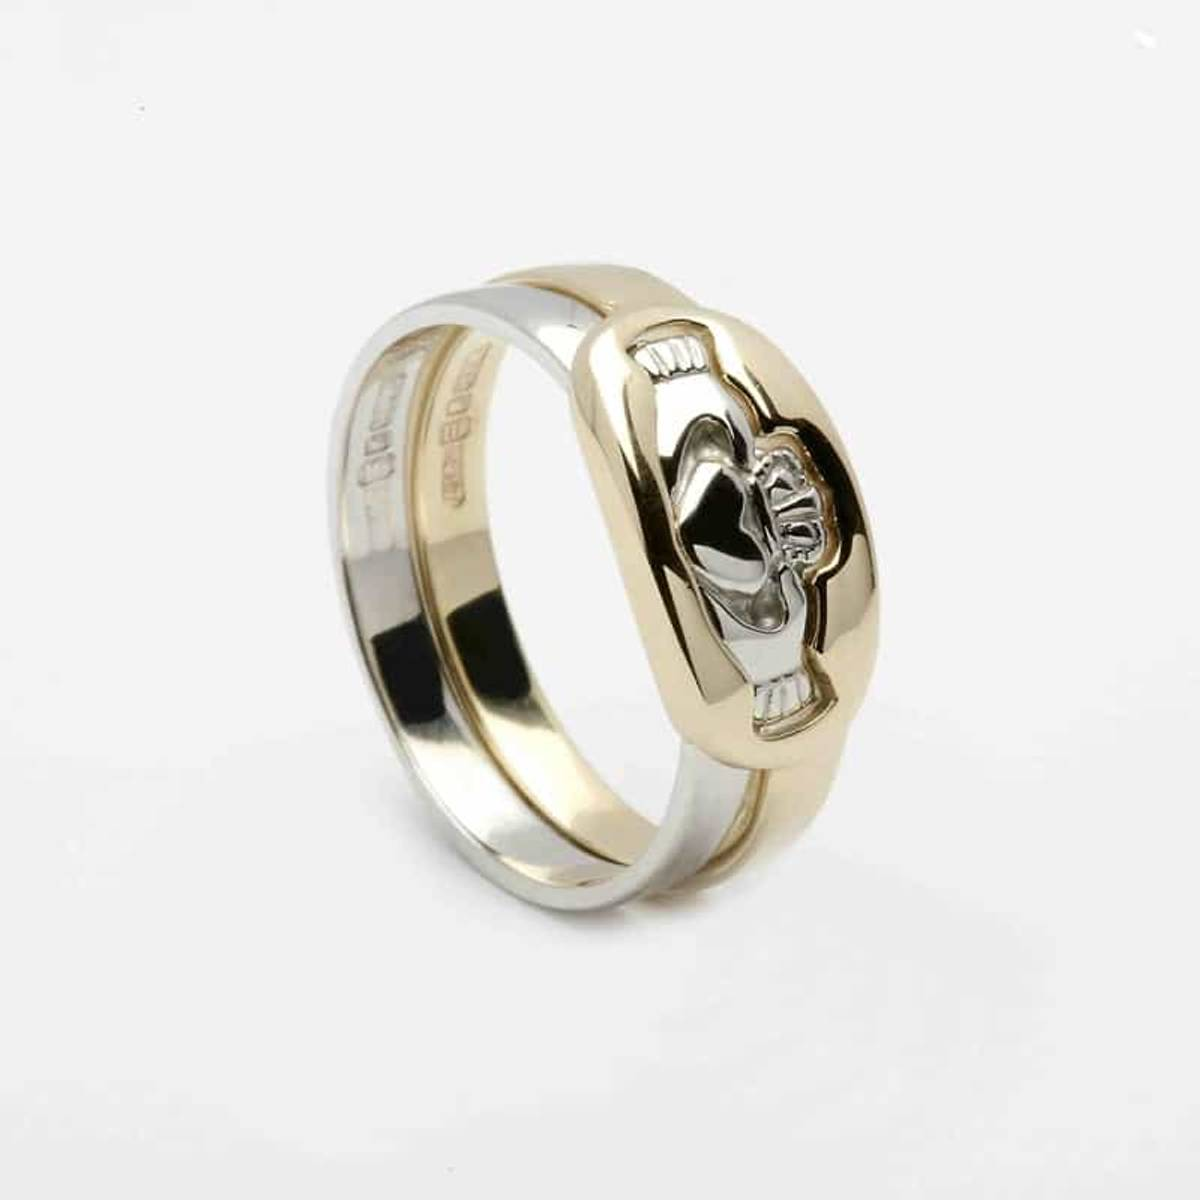 10 carat gold 2-part claddagh rings set